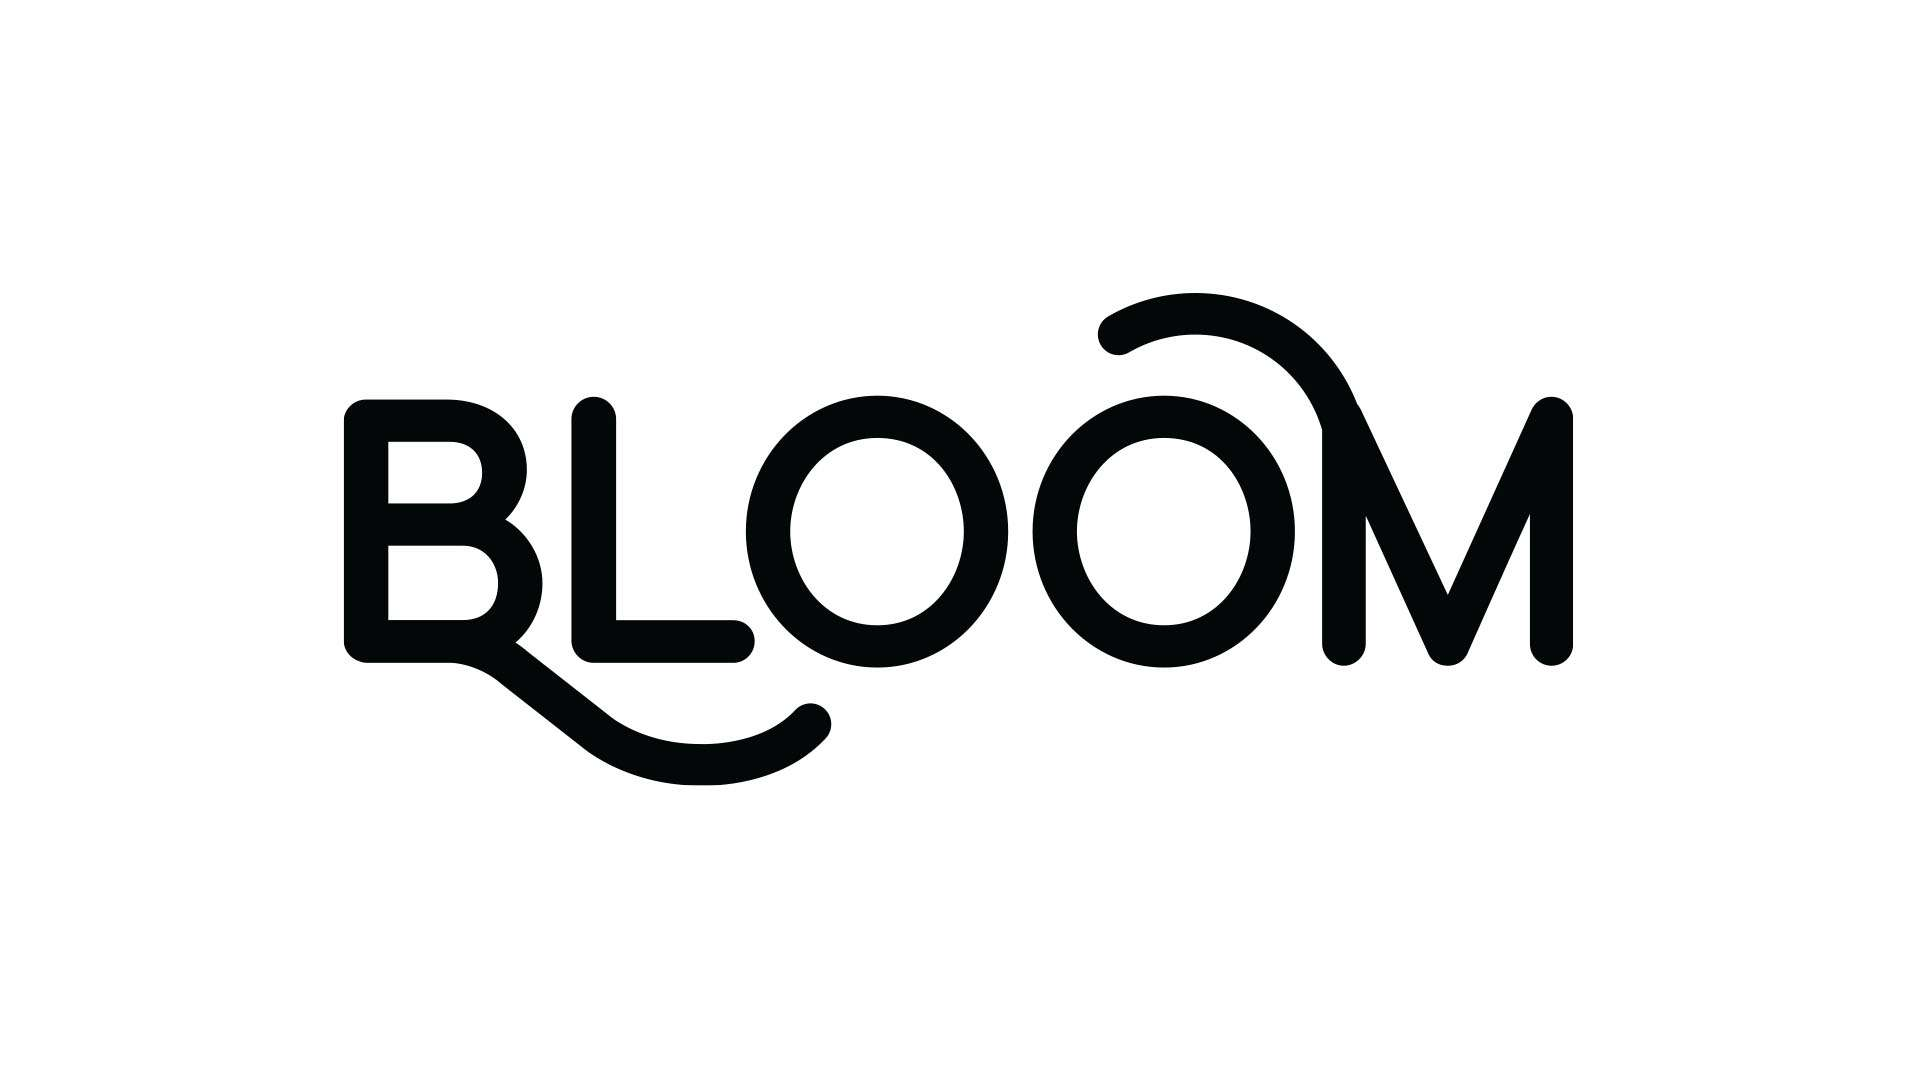 Logo design for Bloom, a meal replacement supplement using natural ingredients.